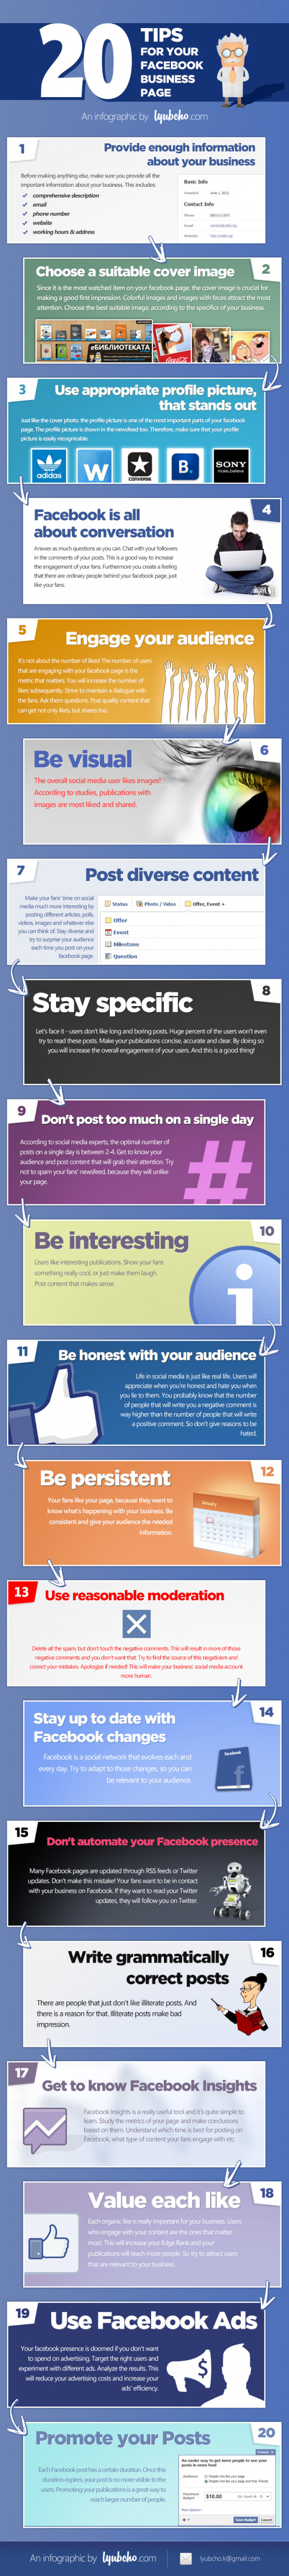 20 Tips To Improve Your Facebook Page